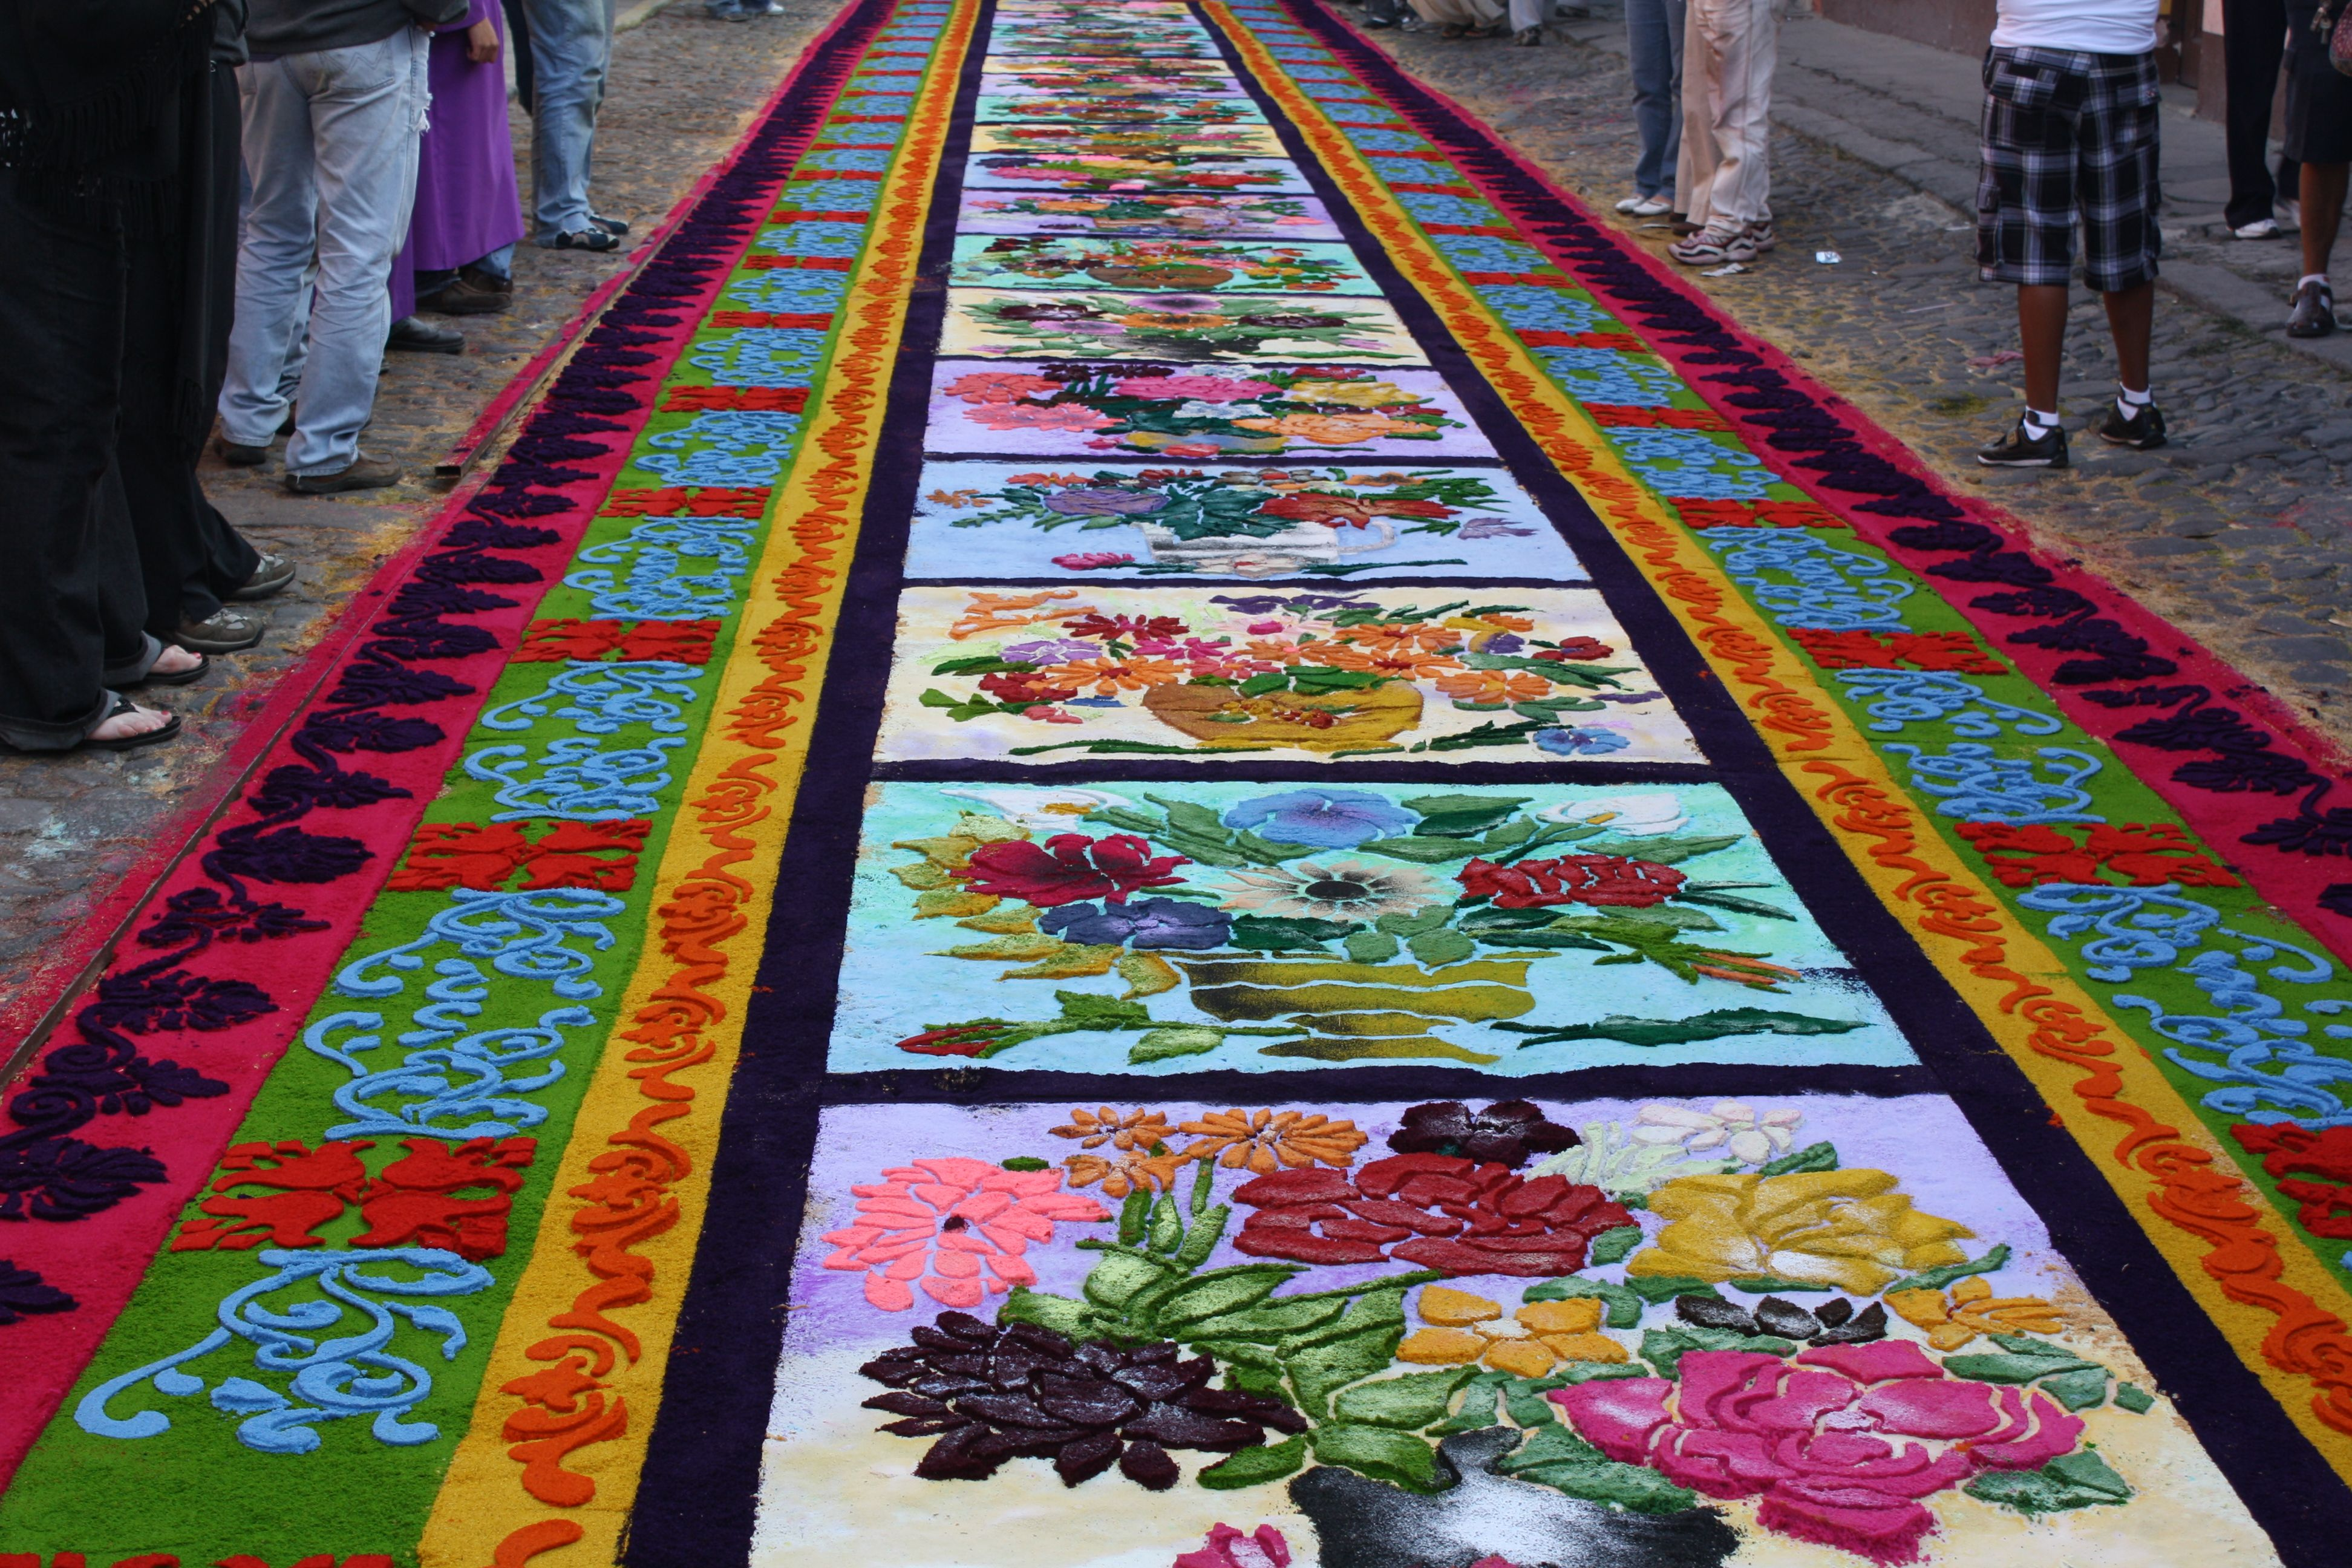 Sawdust carpets dyed flowers carpet colorful flowers